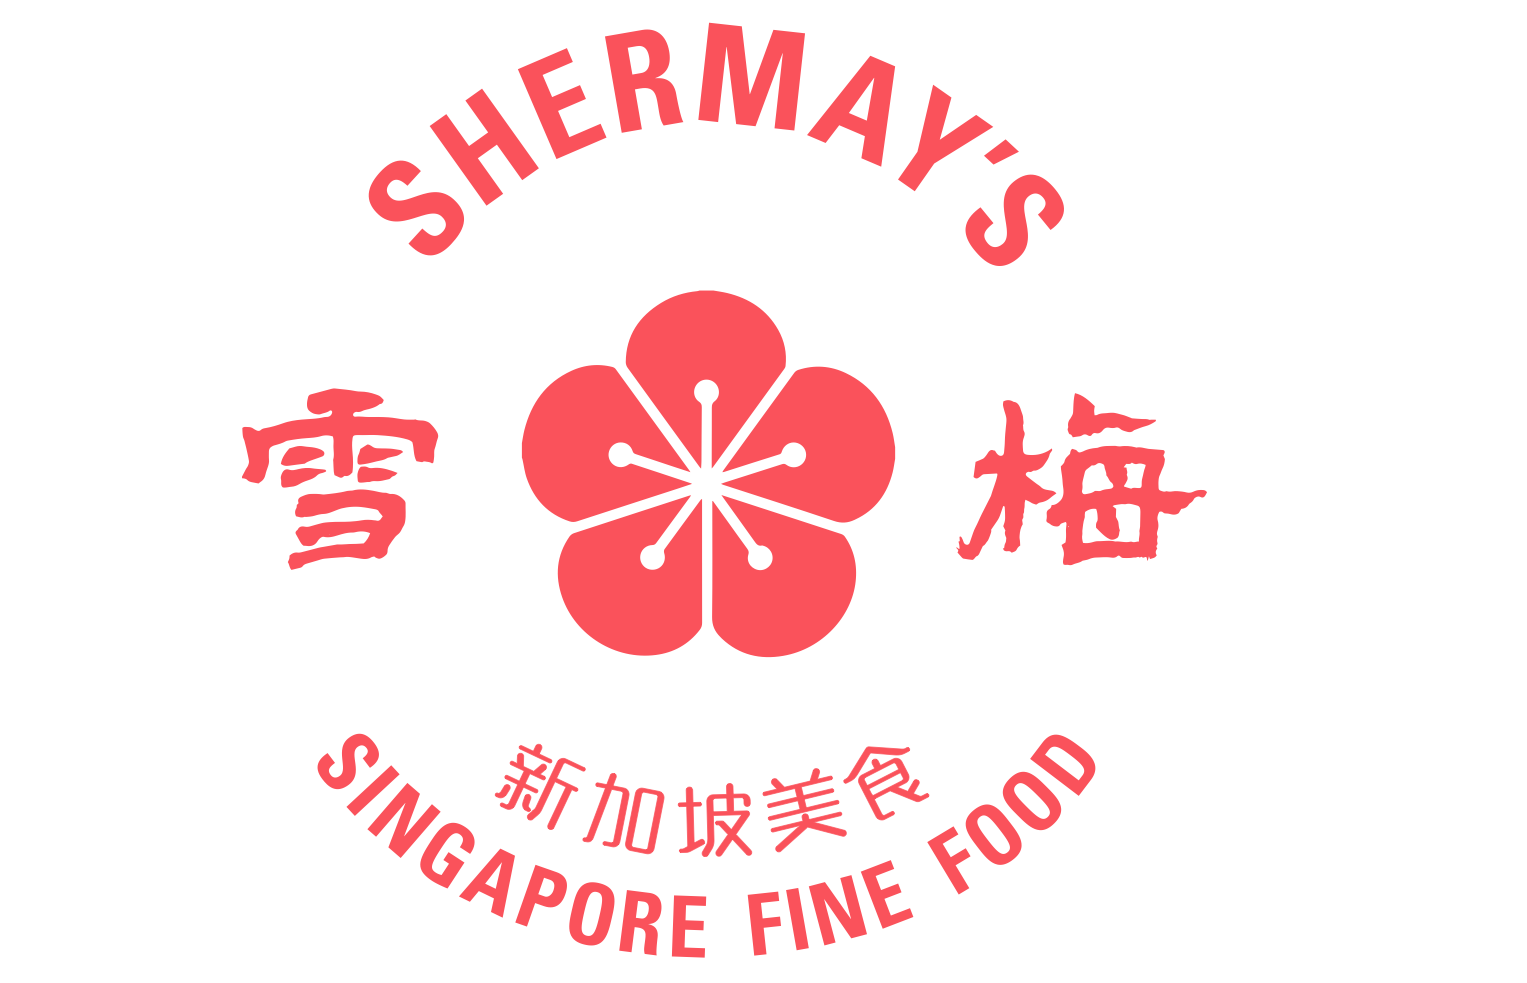 Sprout 2018 - Shermay's Singapore Fine Food